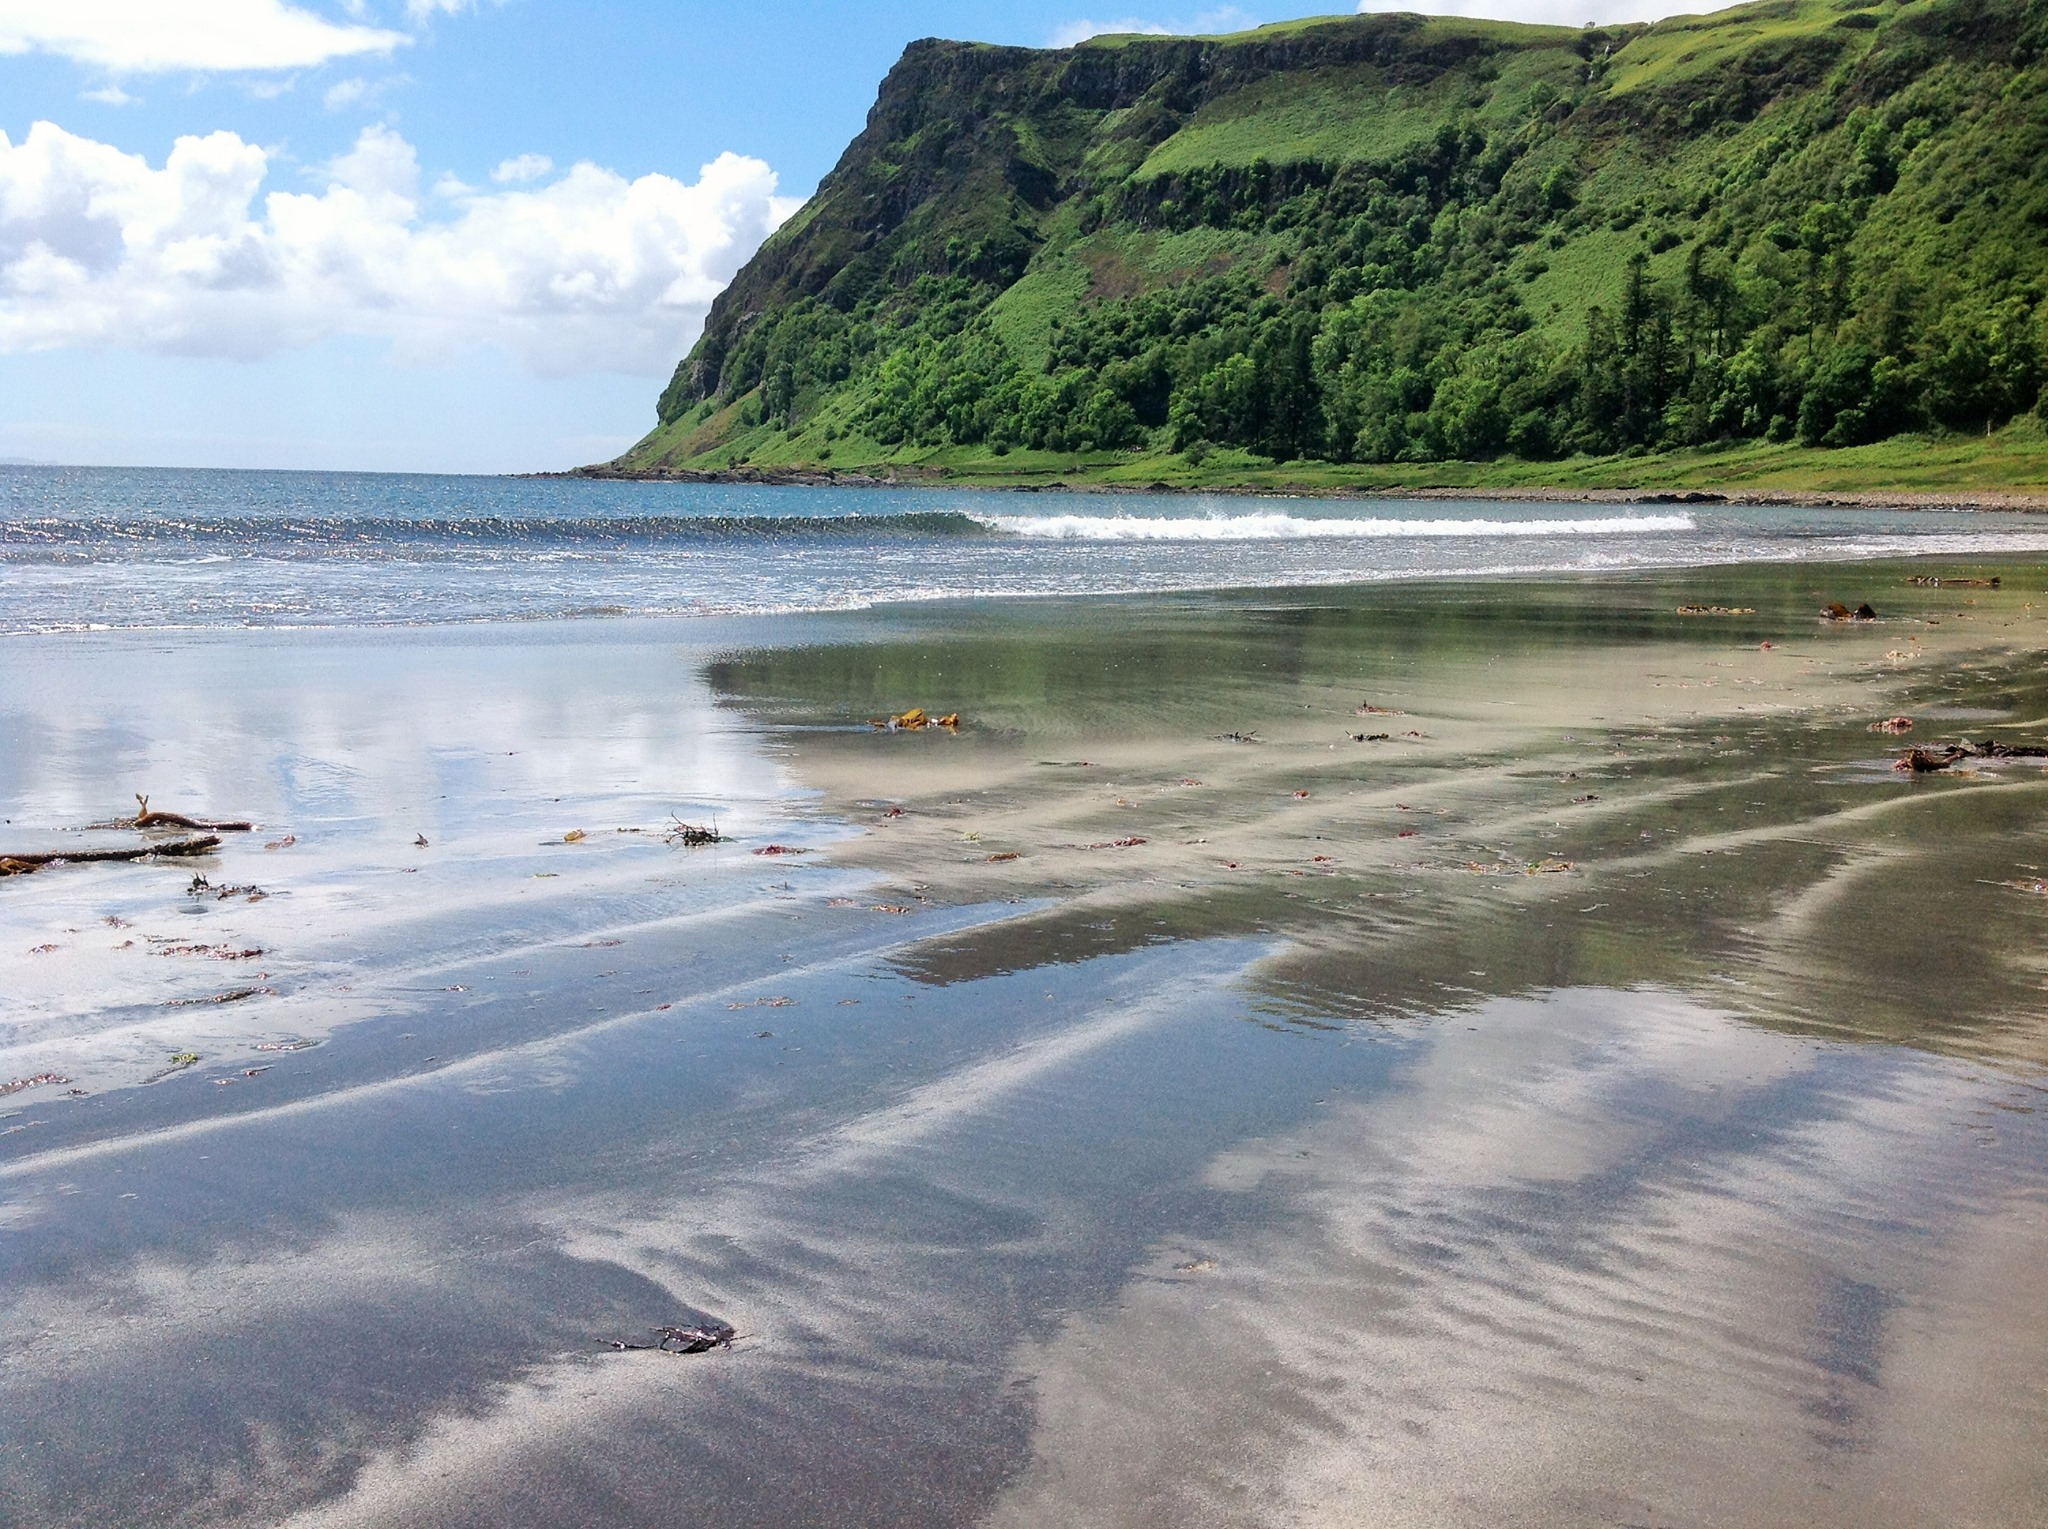 The grey sand beach at Carsaig, surrounded by a lush green headland and blue clouded skies as the waves lap on shore